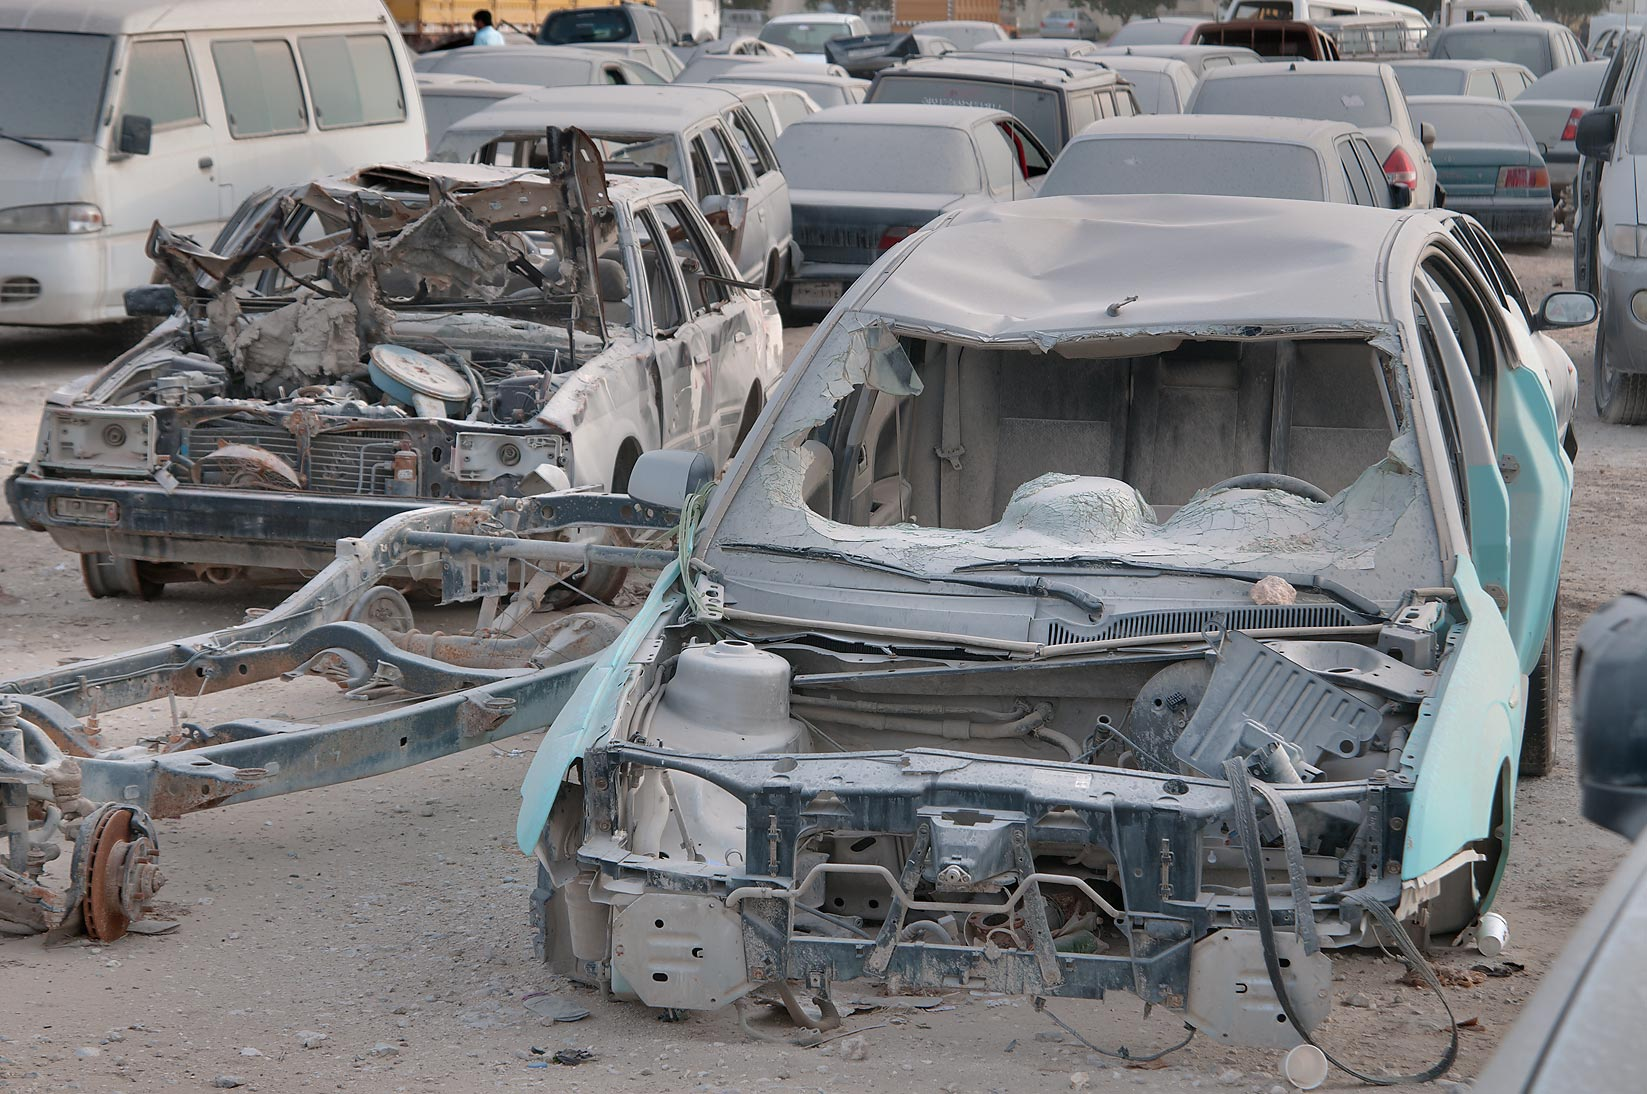 Crashed cars parked near Al Mamoura Traffic...Division, Traffic Patrol). Doha, Qatar